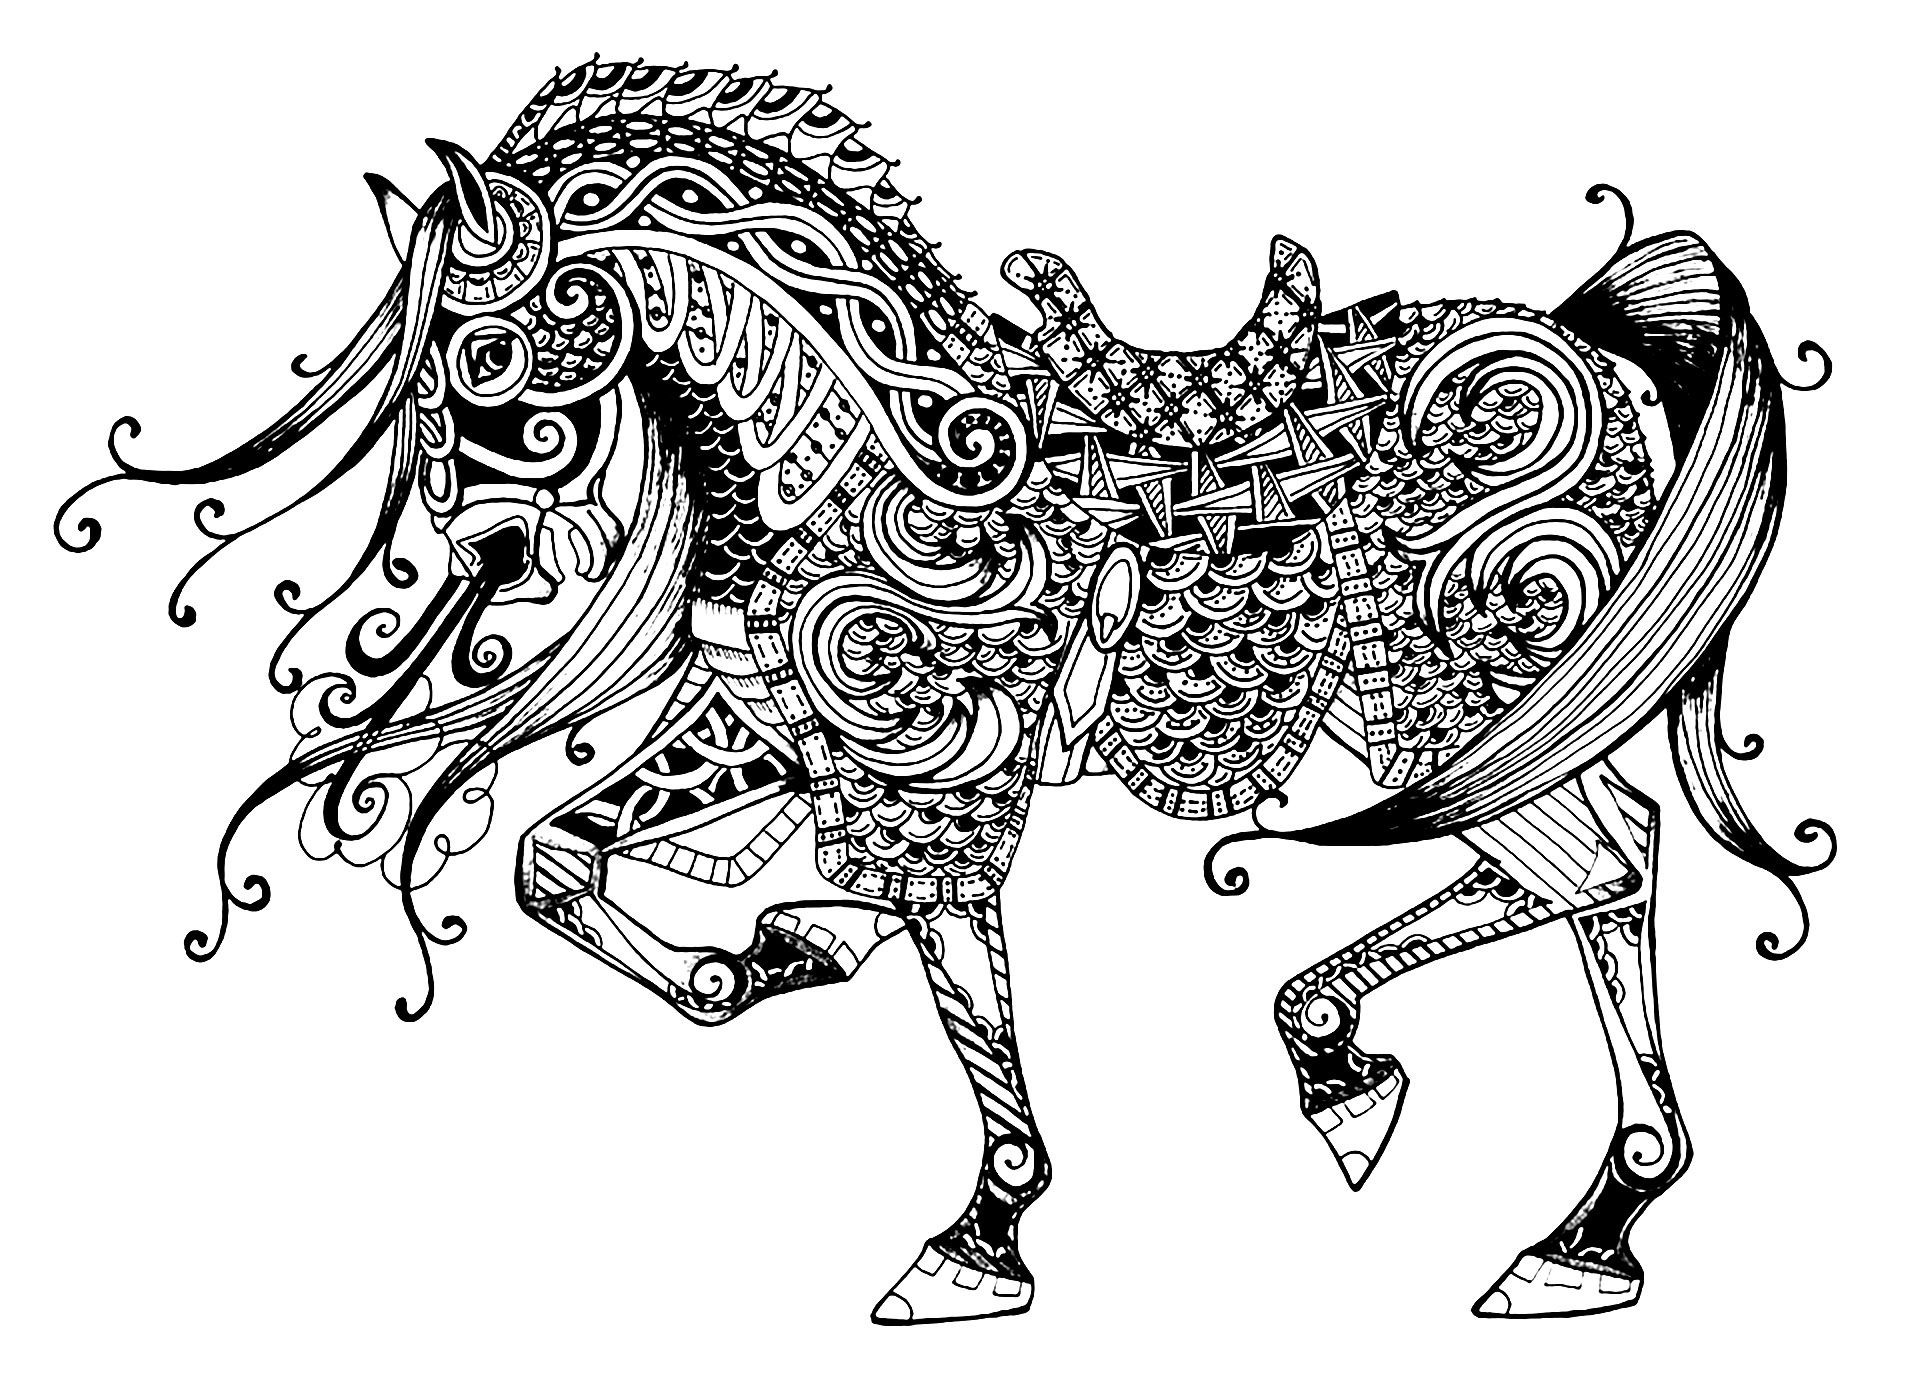 Here Are Plex Coloring Pages For Adults Of Animals Different